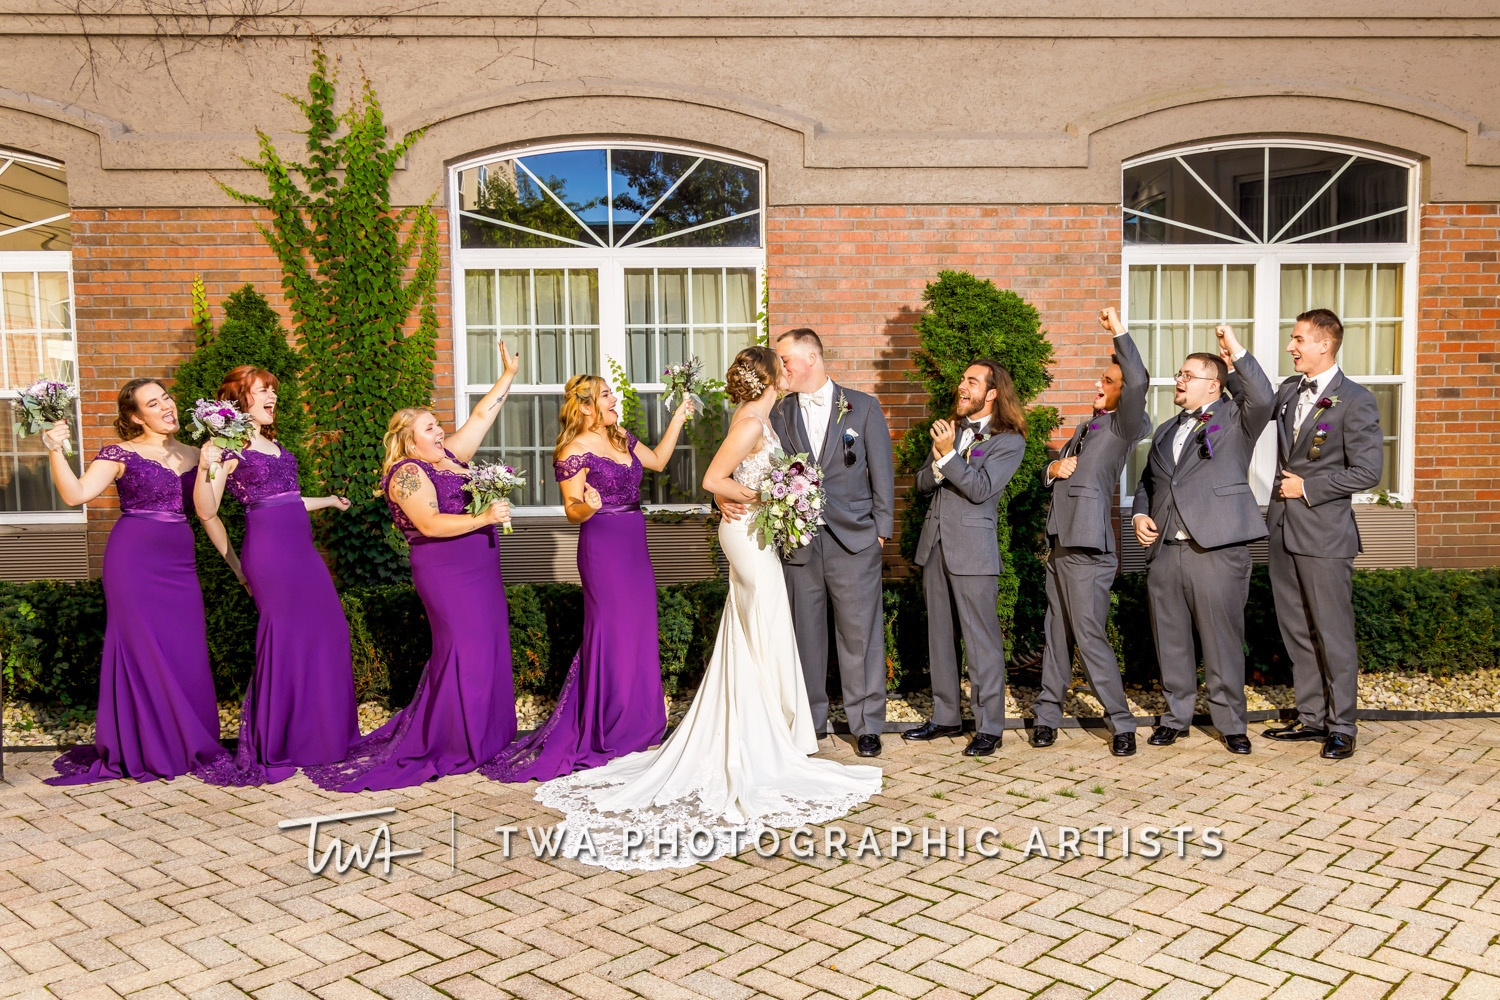 Chicago-Wedding-Photographer-TWA-Photographic-Artists-Belvedere-Banquets_Galway_Galway_MiC_DR-0111